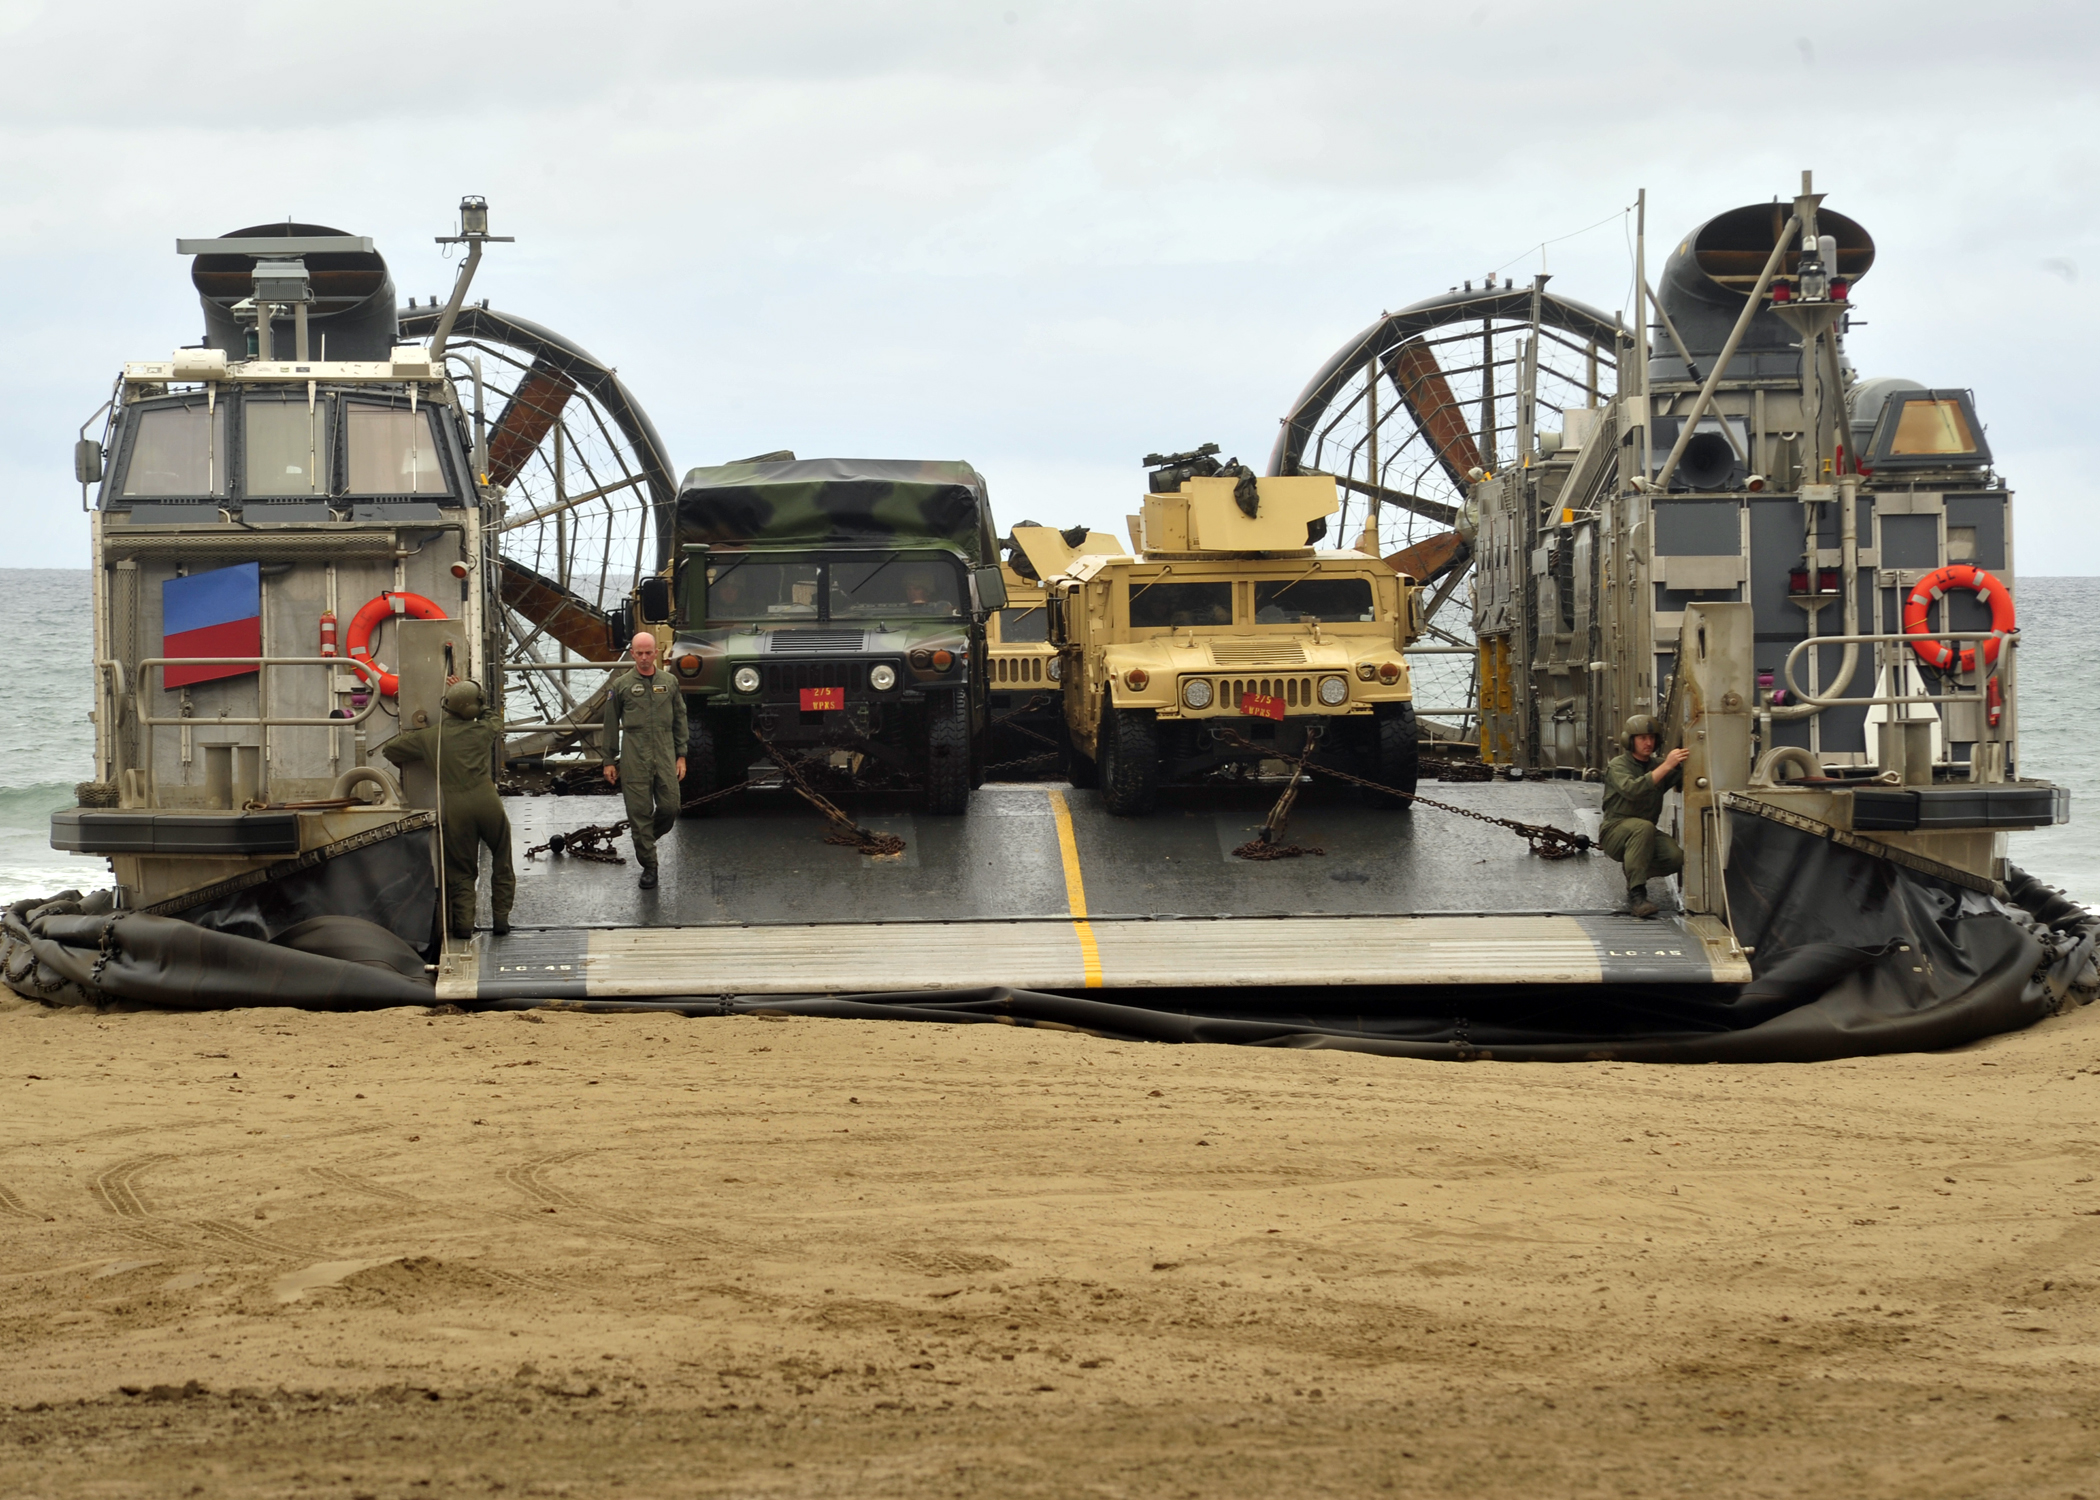 Sailors assigned to Assault Craft Unit (ACU) 5 prepare to unload Humvees from a landing craft, air cushion (LCAC) during amphibious assault training as part of exercise Dawn Blitz in June 2013. US Navy photo.